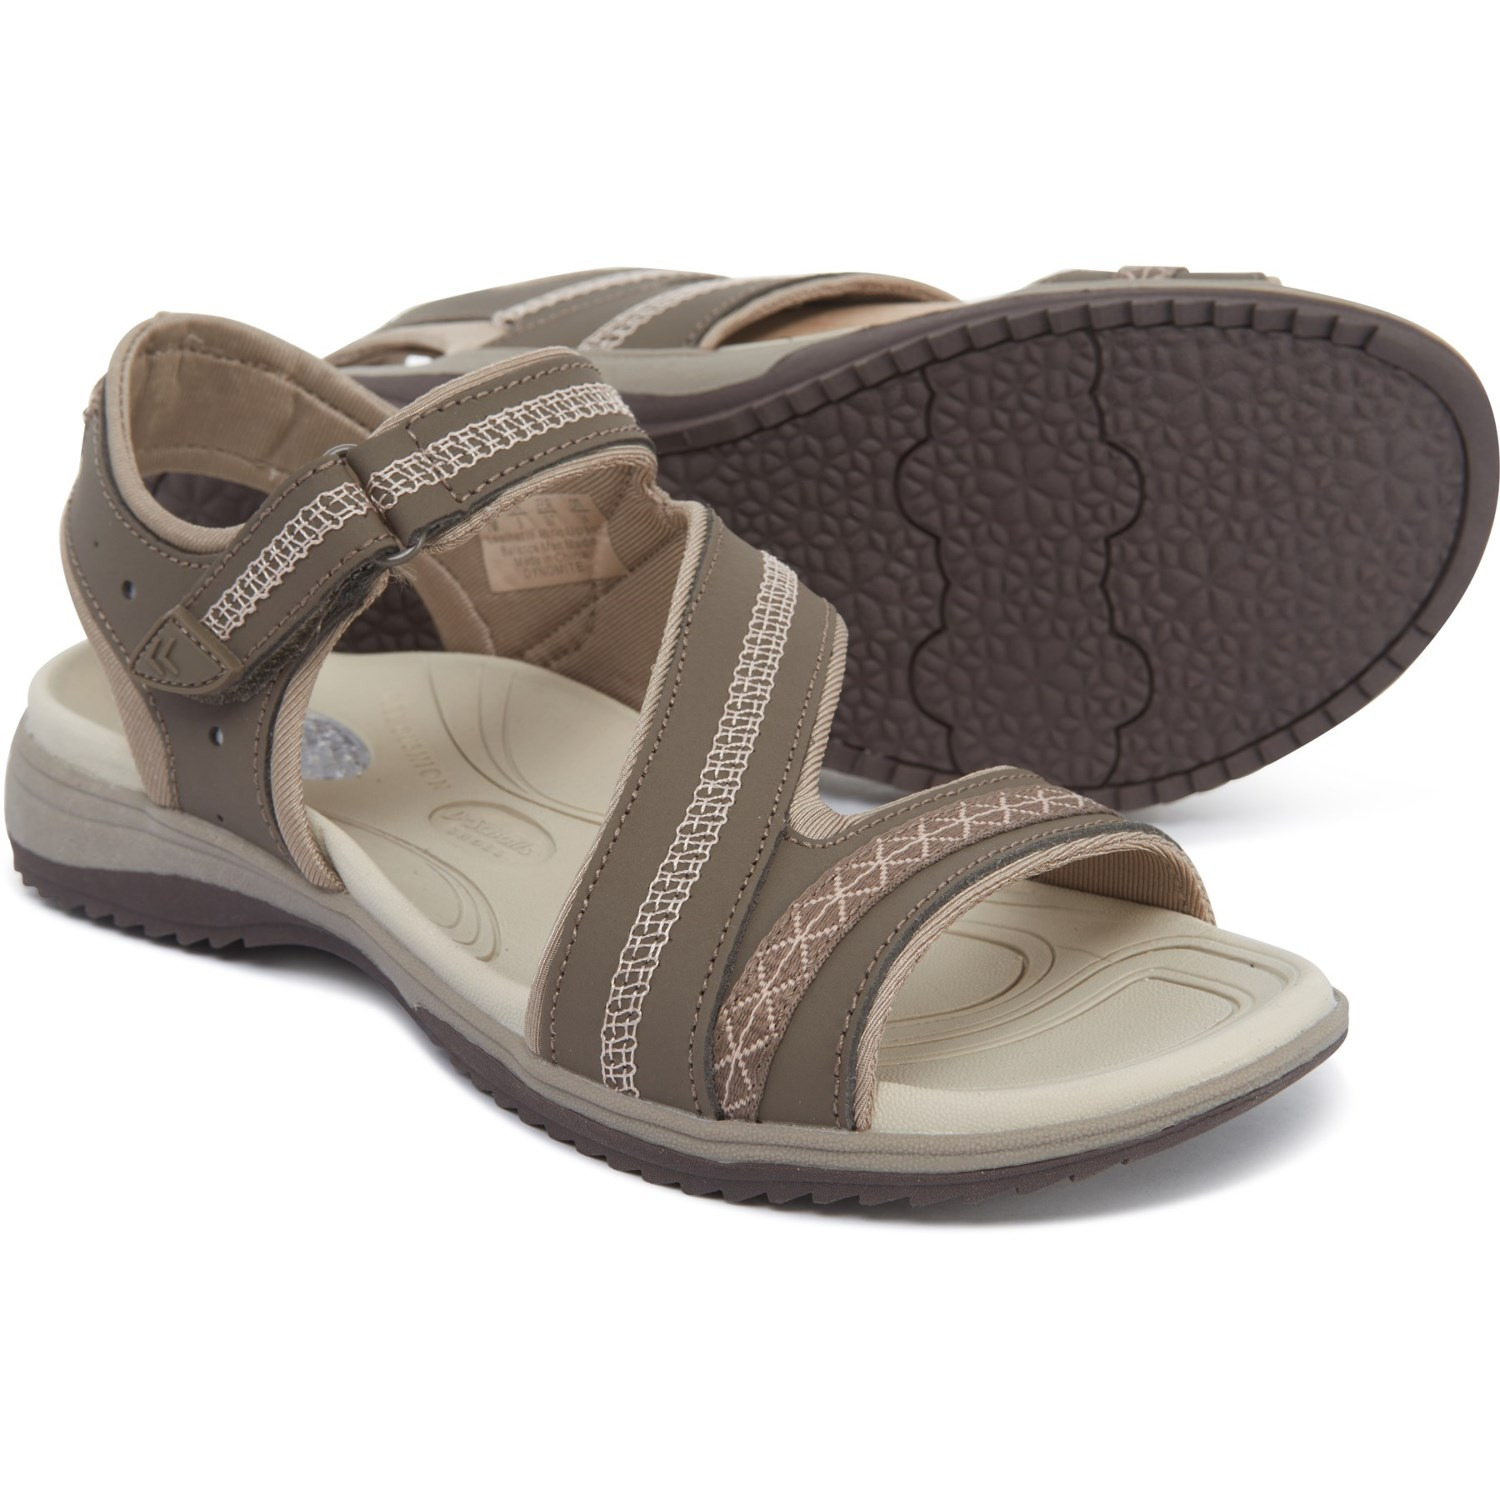 775eb2bebf3 Dr. Scholl's Dynomite Sandals - Leather (For Women)